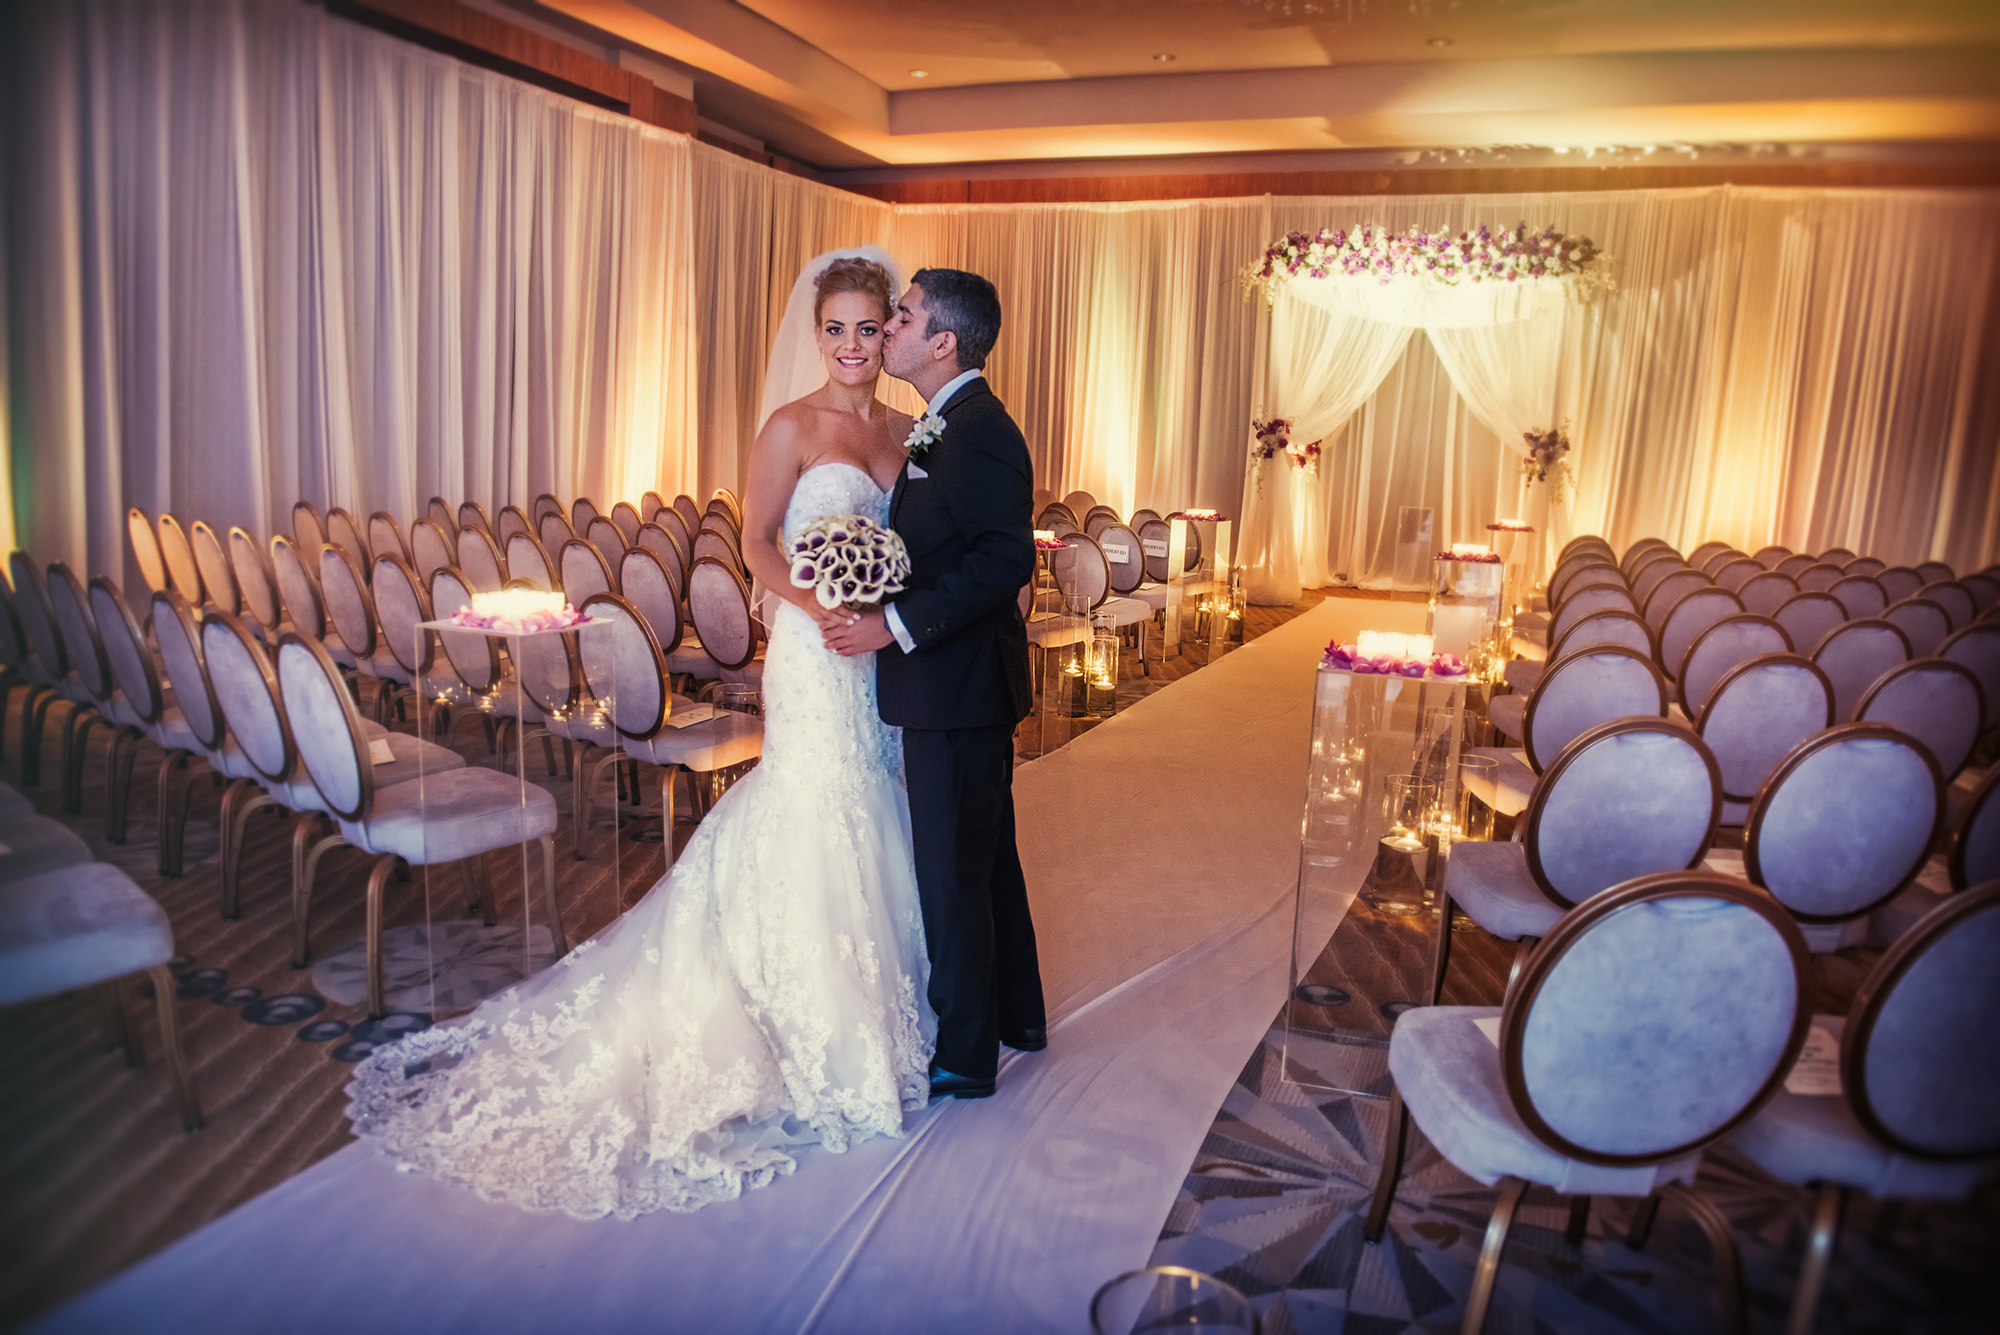 ritz-carlton-florida-wedding-jeffkolodny-photography-27